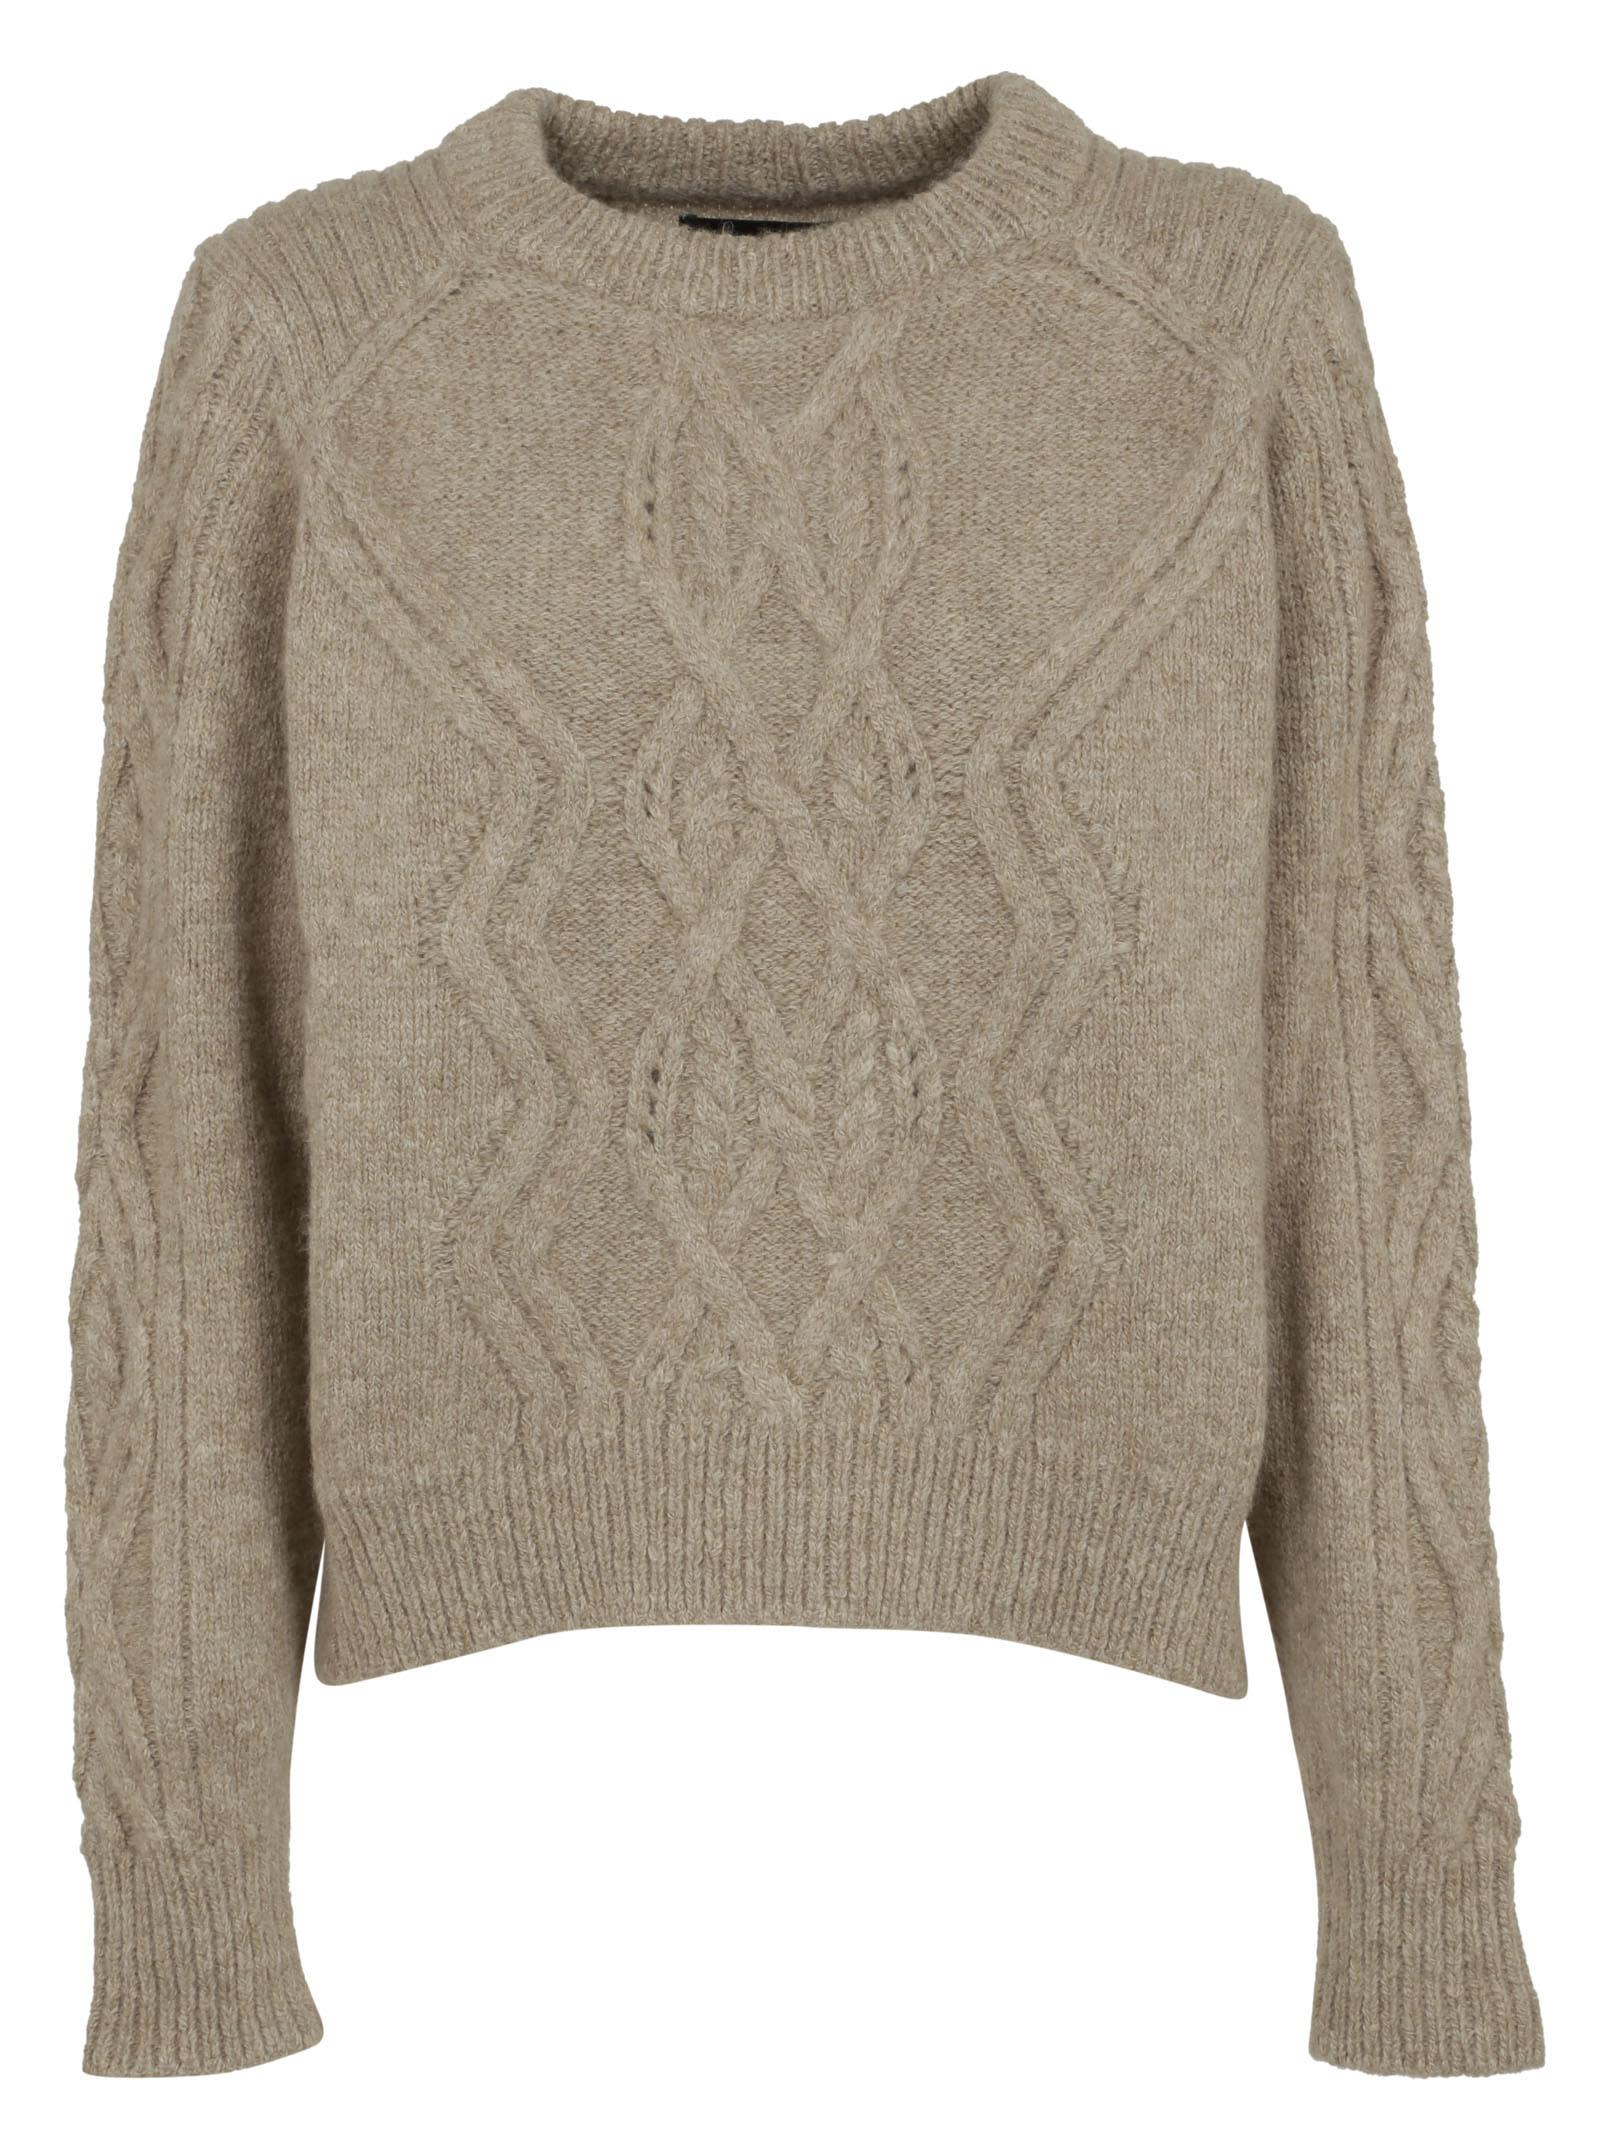 isabel marant isabel marant cable knit sweater beige women 39 s sweaters italist. Black Bedroom Furniture Sets. Home Design Ideas